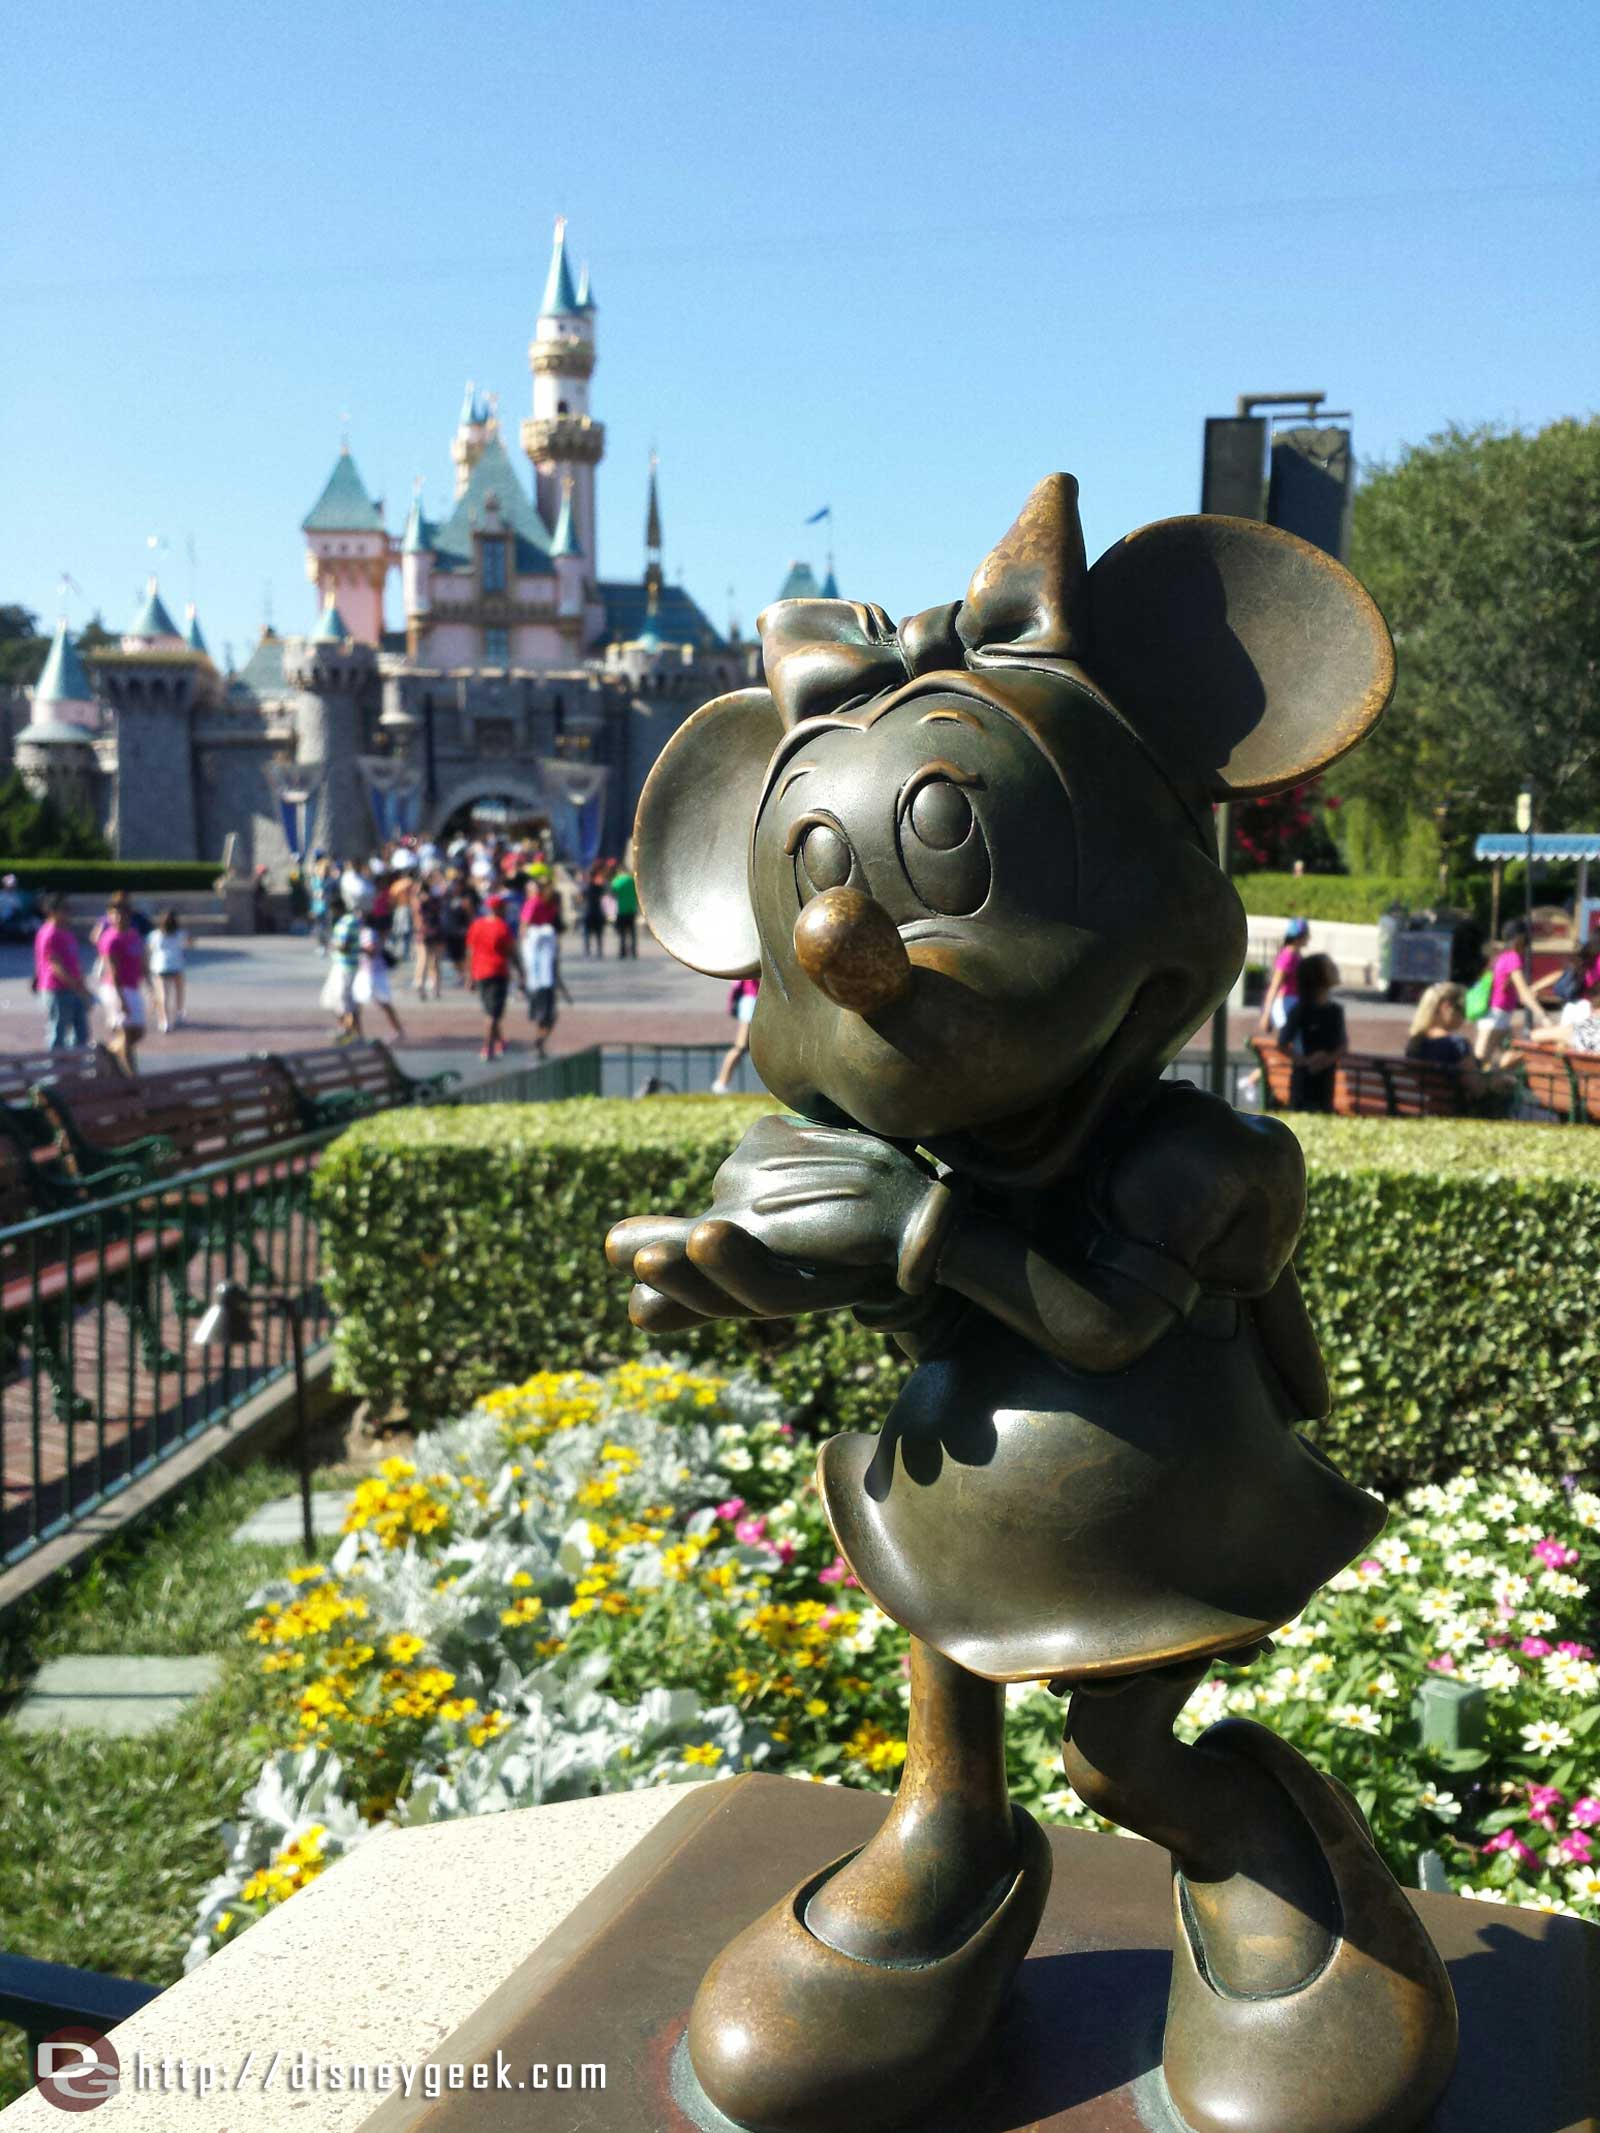 Minnie statue and Sleeping Beauty Castle